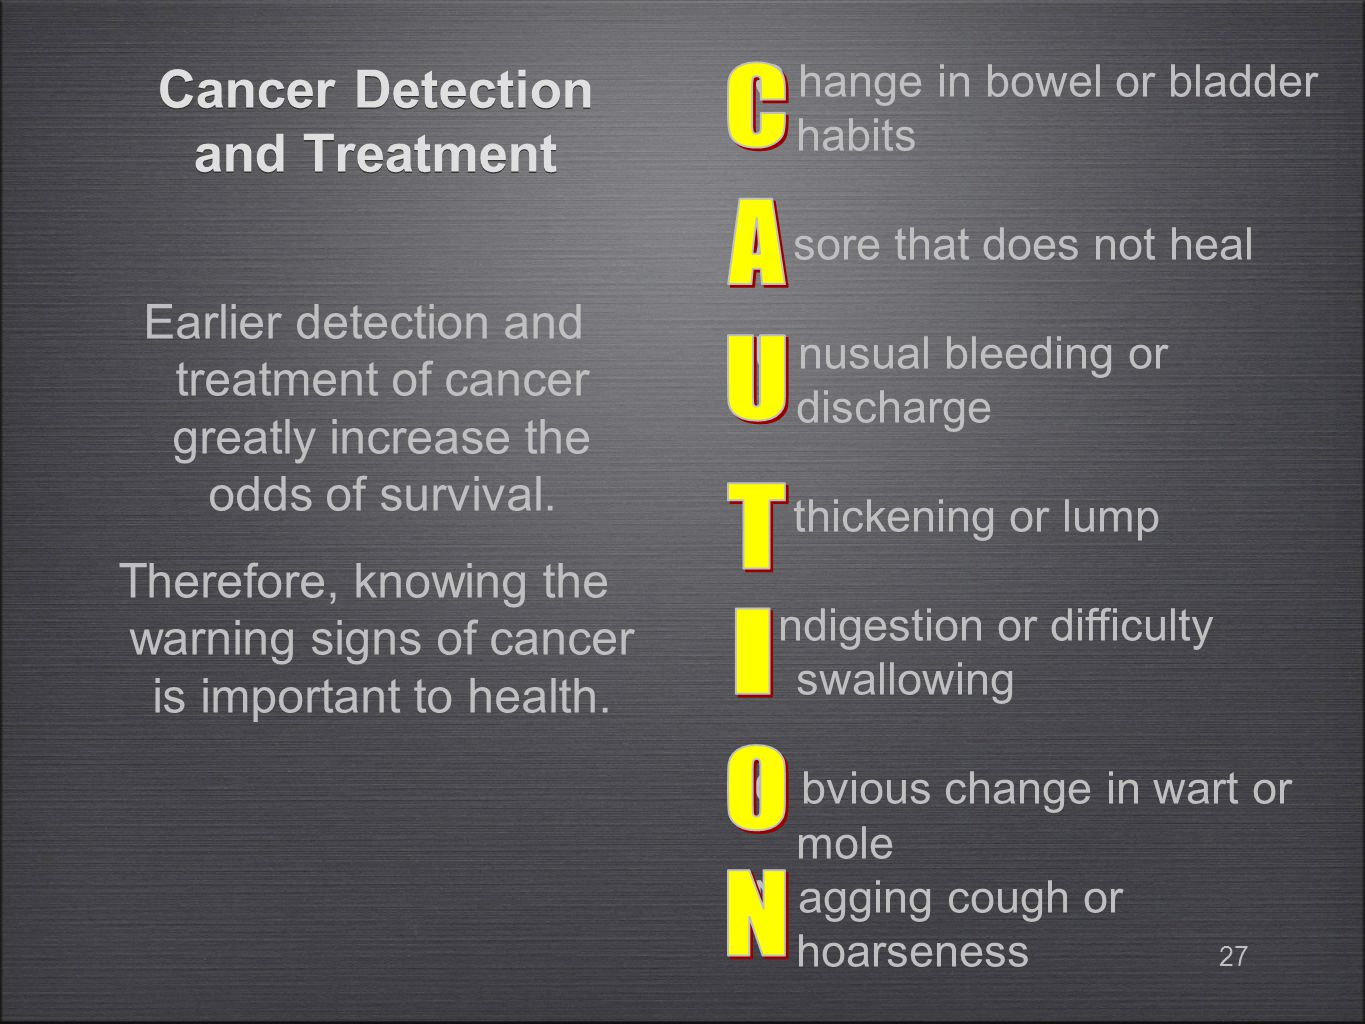 Cancer Detection and Treatment